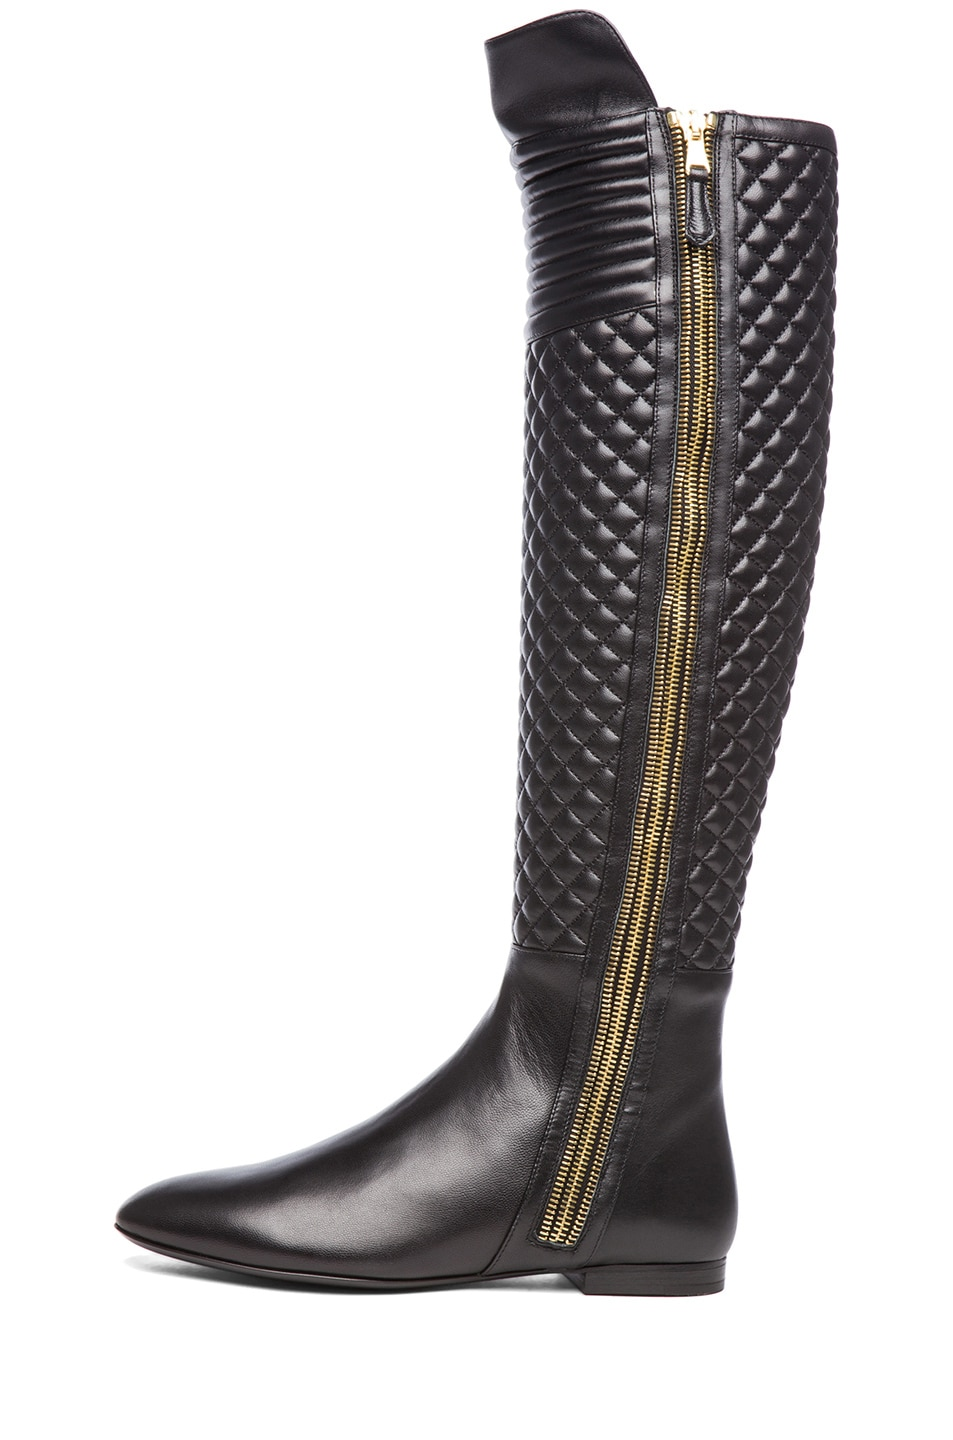 Image 1 of Brian Atwood Ares Nappa Leather Boot in Black